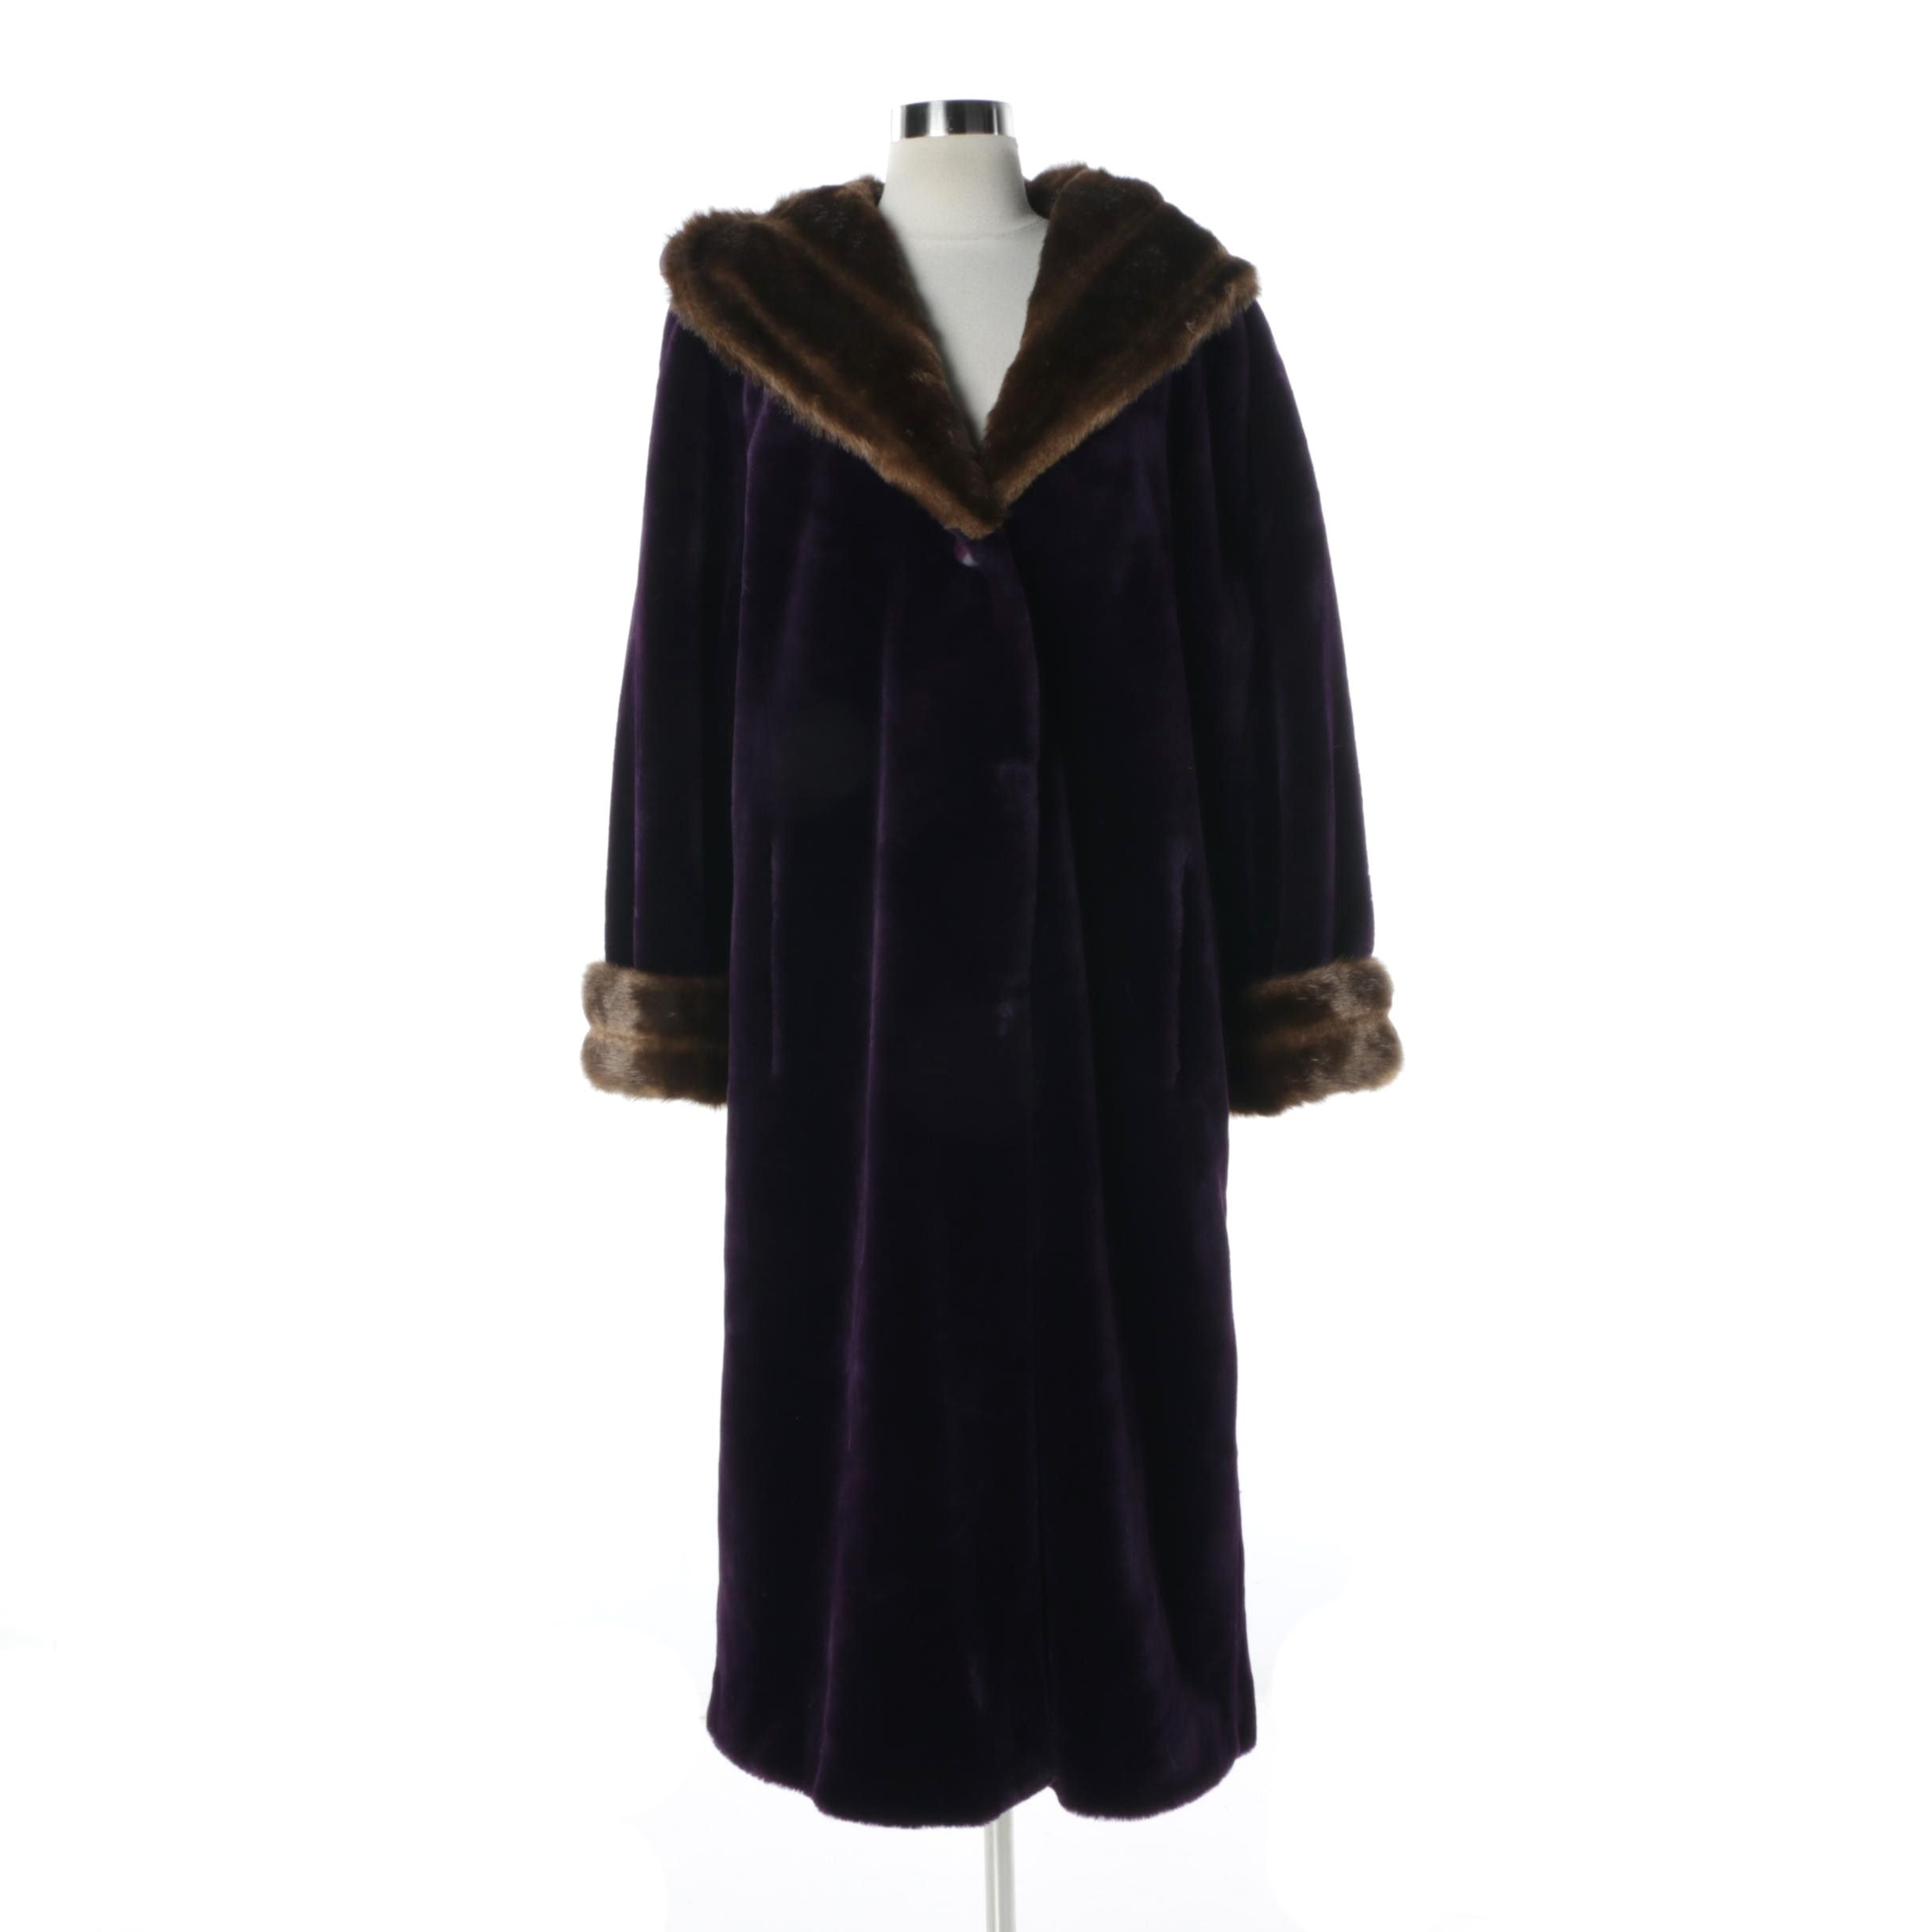 Terry Lewis Velvet Royal Purple Faux Fur Hooded Coat